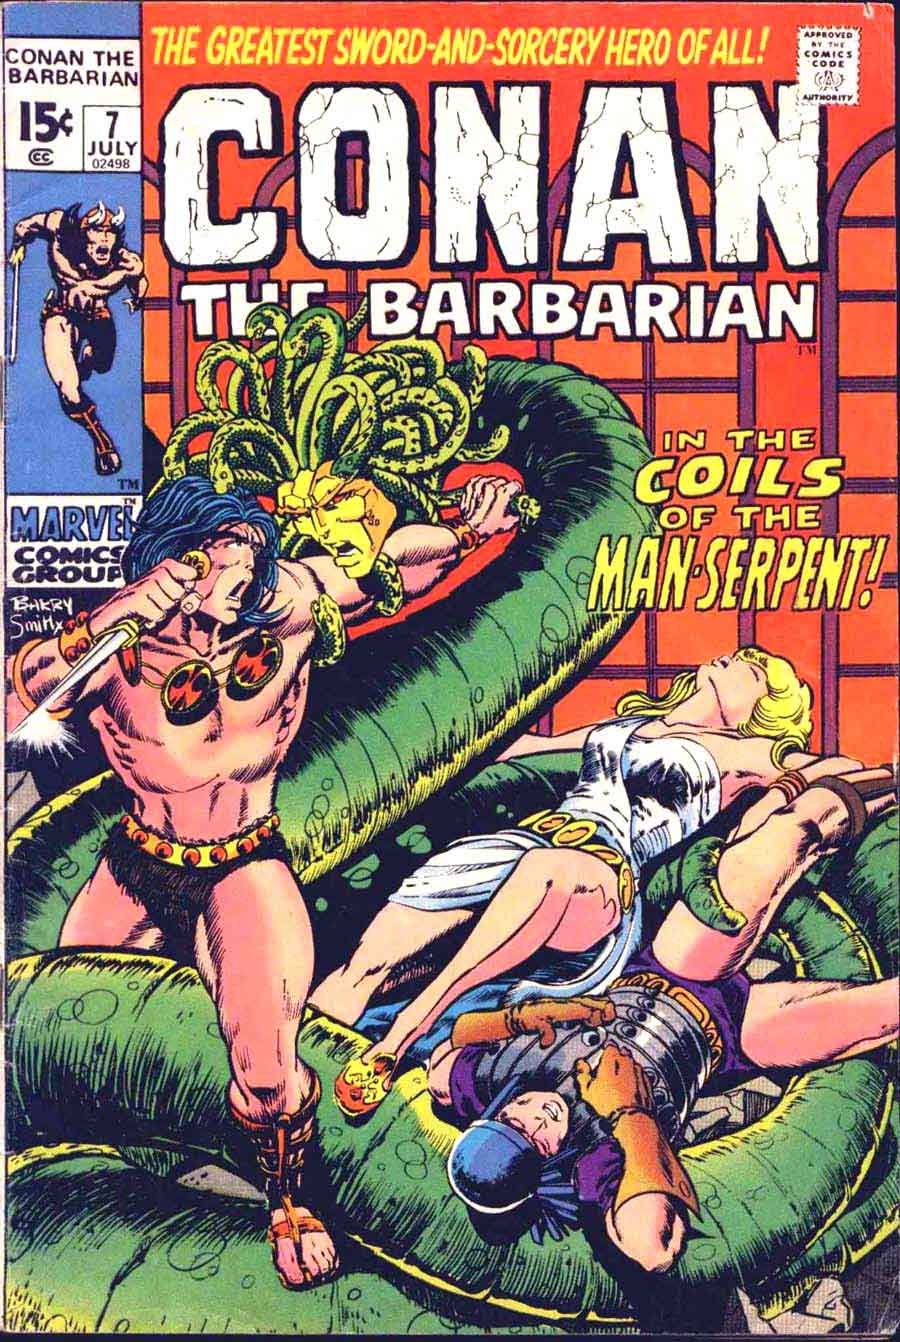 Conan the Barbarian v1 #7 marvel comic book cover art by Barry Windsor Smith